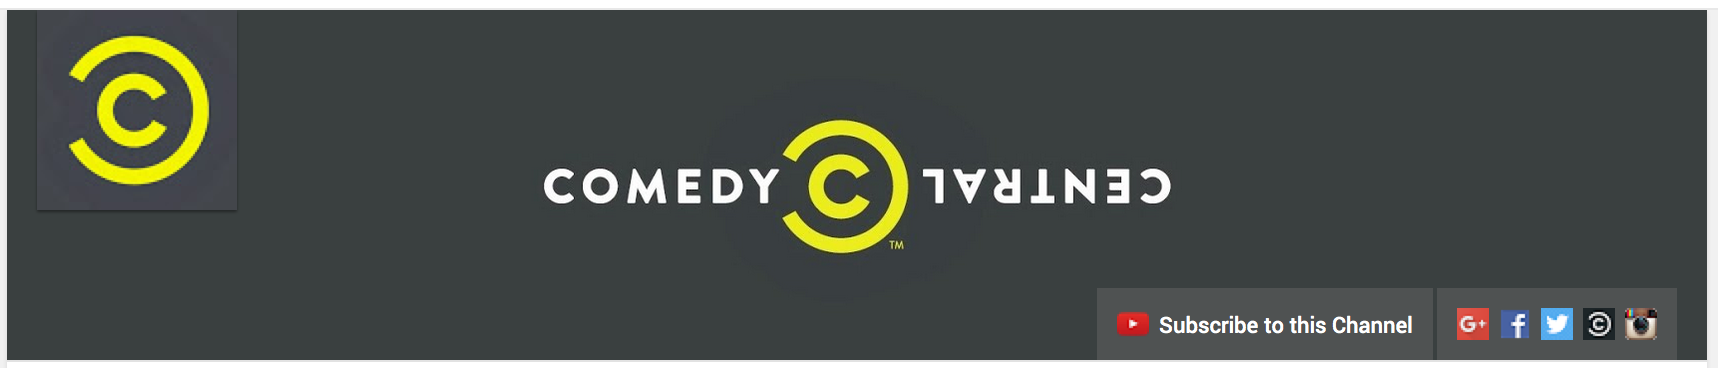 Comedy Central YouTube Banner